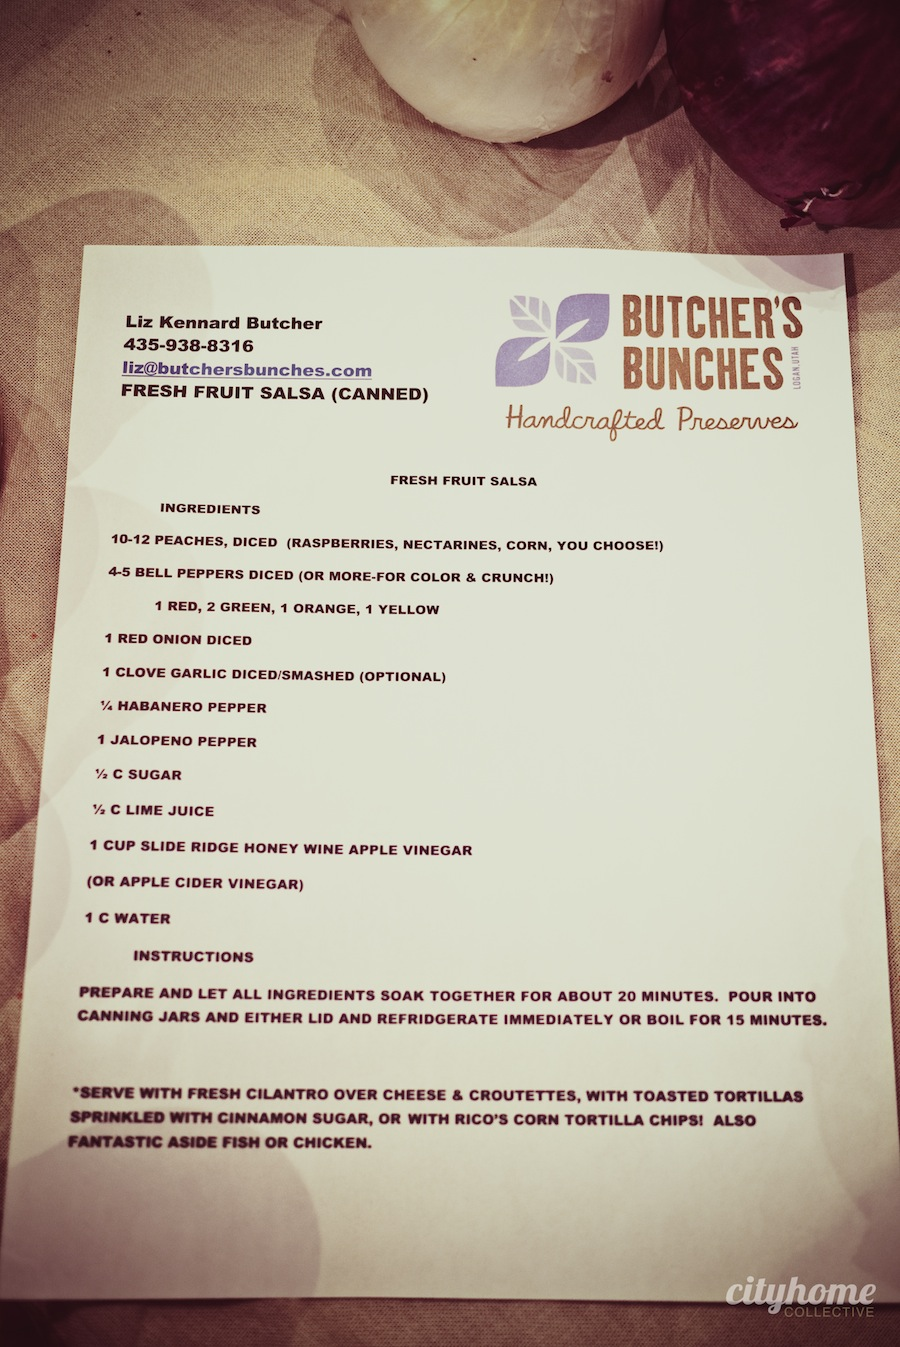 Butchers-Bunches-Craft-Lake-City-West-Elm-DIY-Canning-Workshop-30